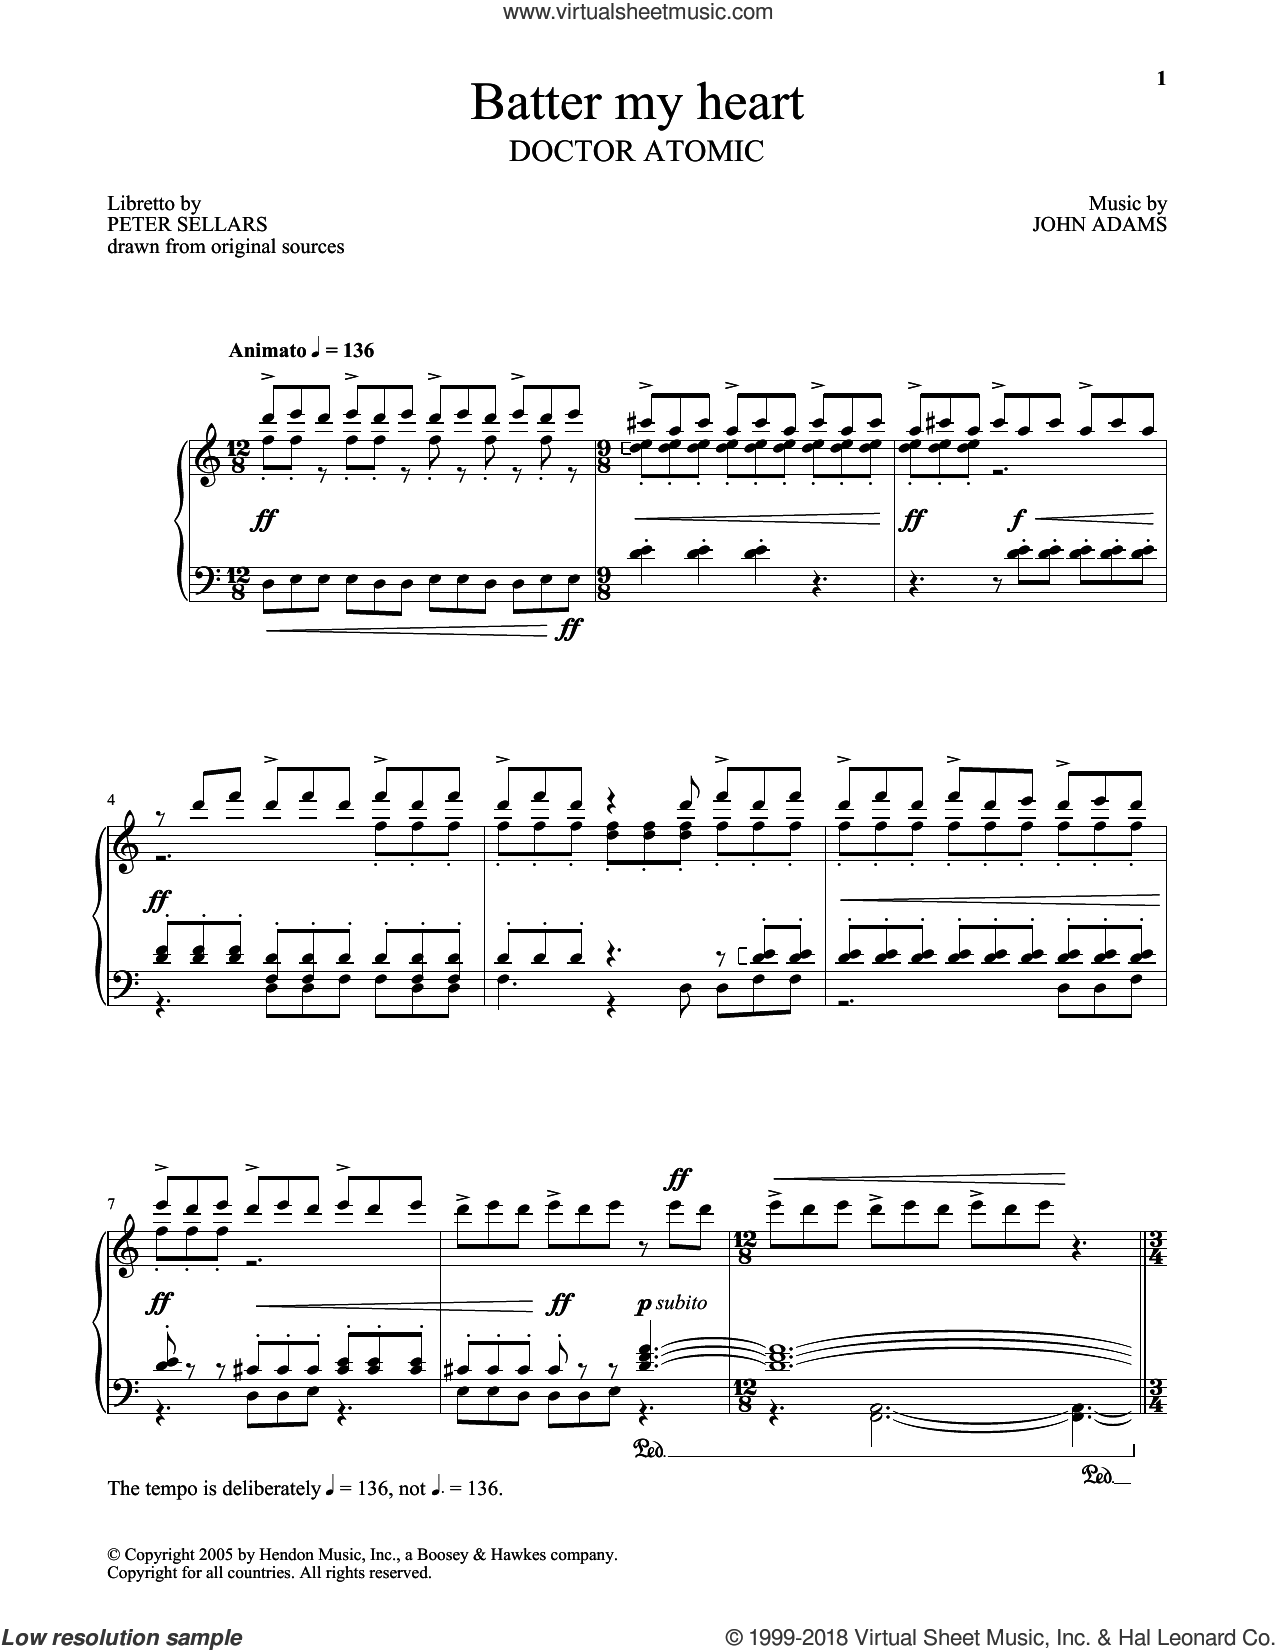 Batter My Heart sheet music for voice and piano by John Adams and Peter Sellars, classical score, intermediate skill level